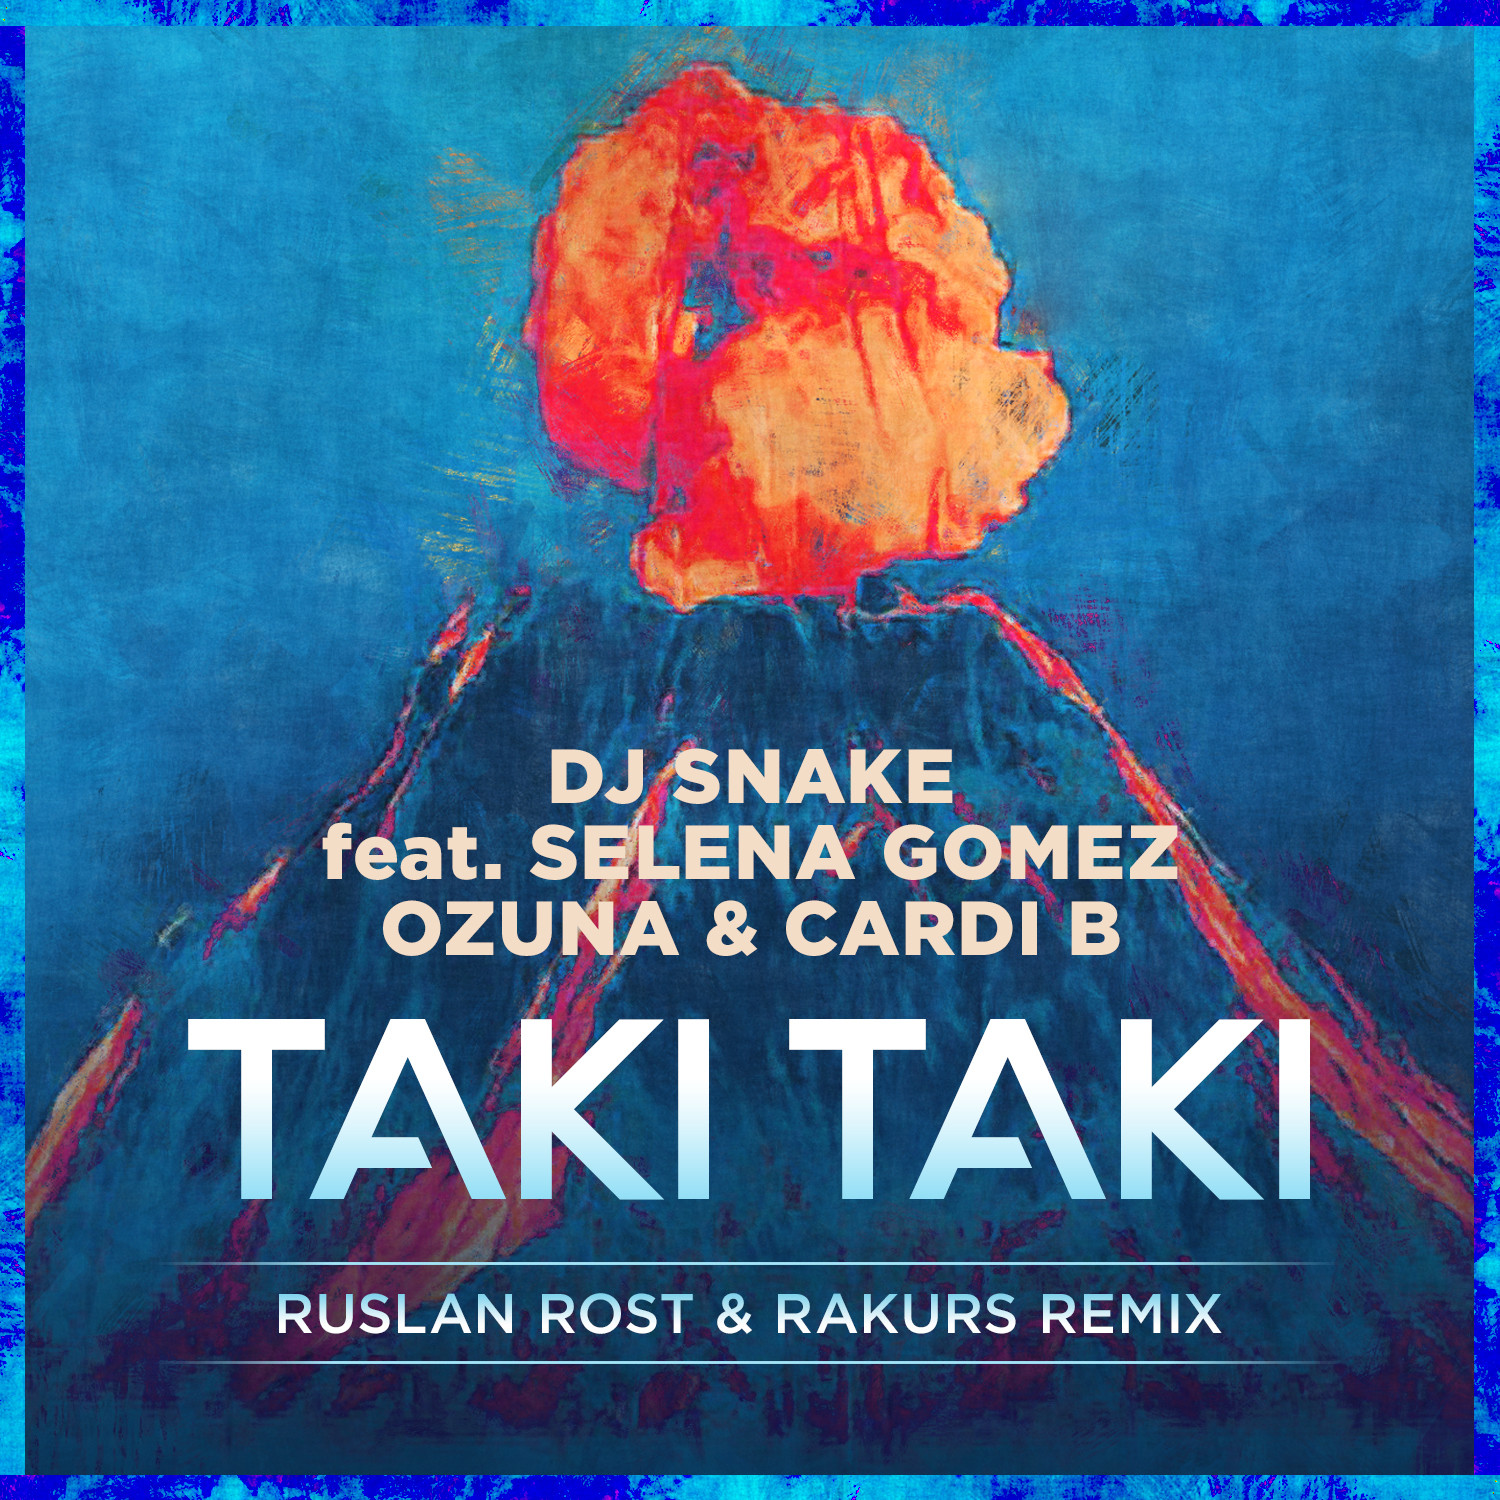 Taki Taki Dj Snake Remix Song Download